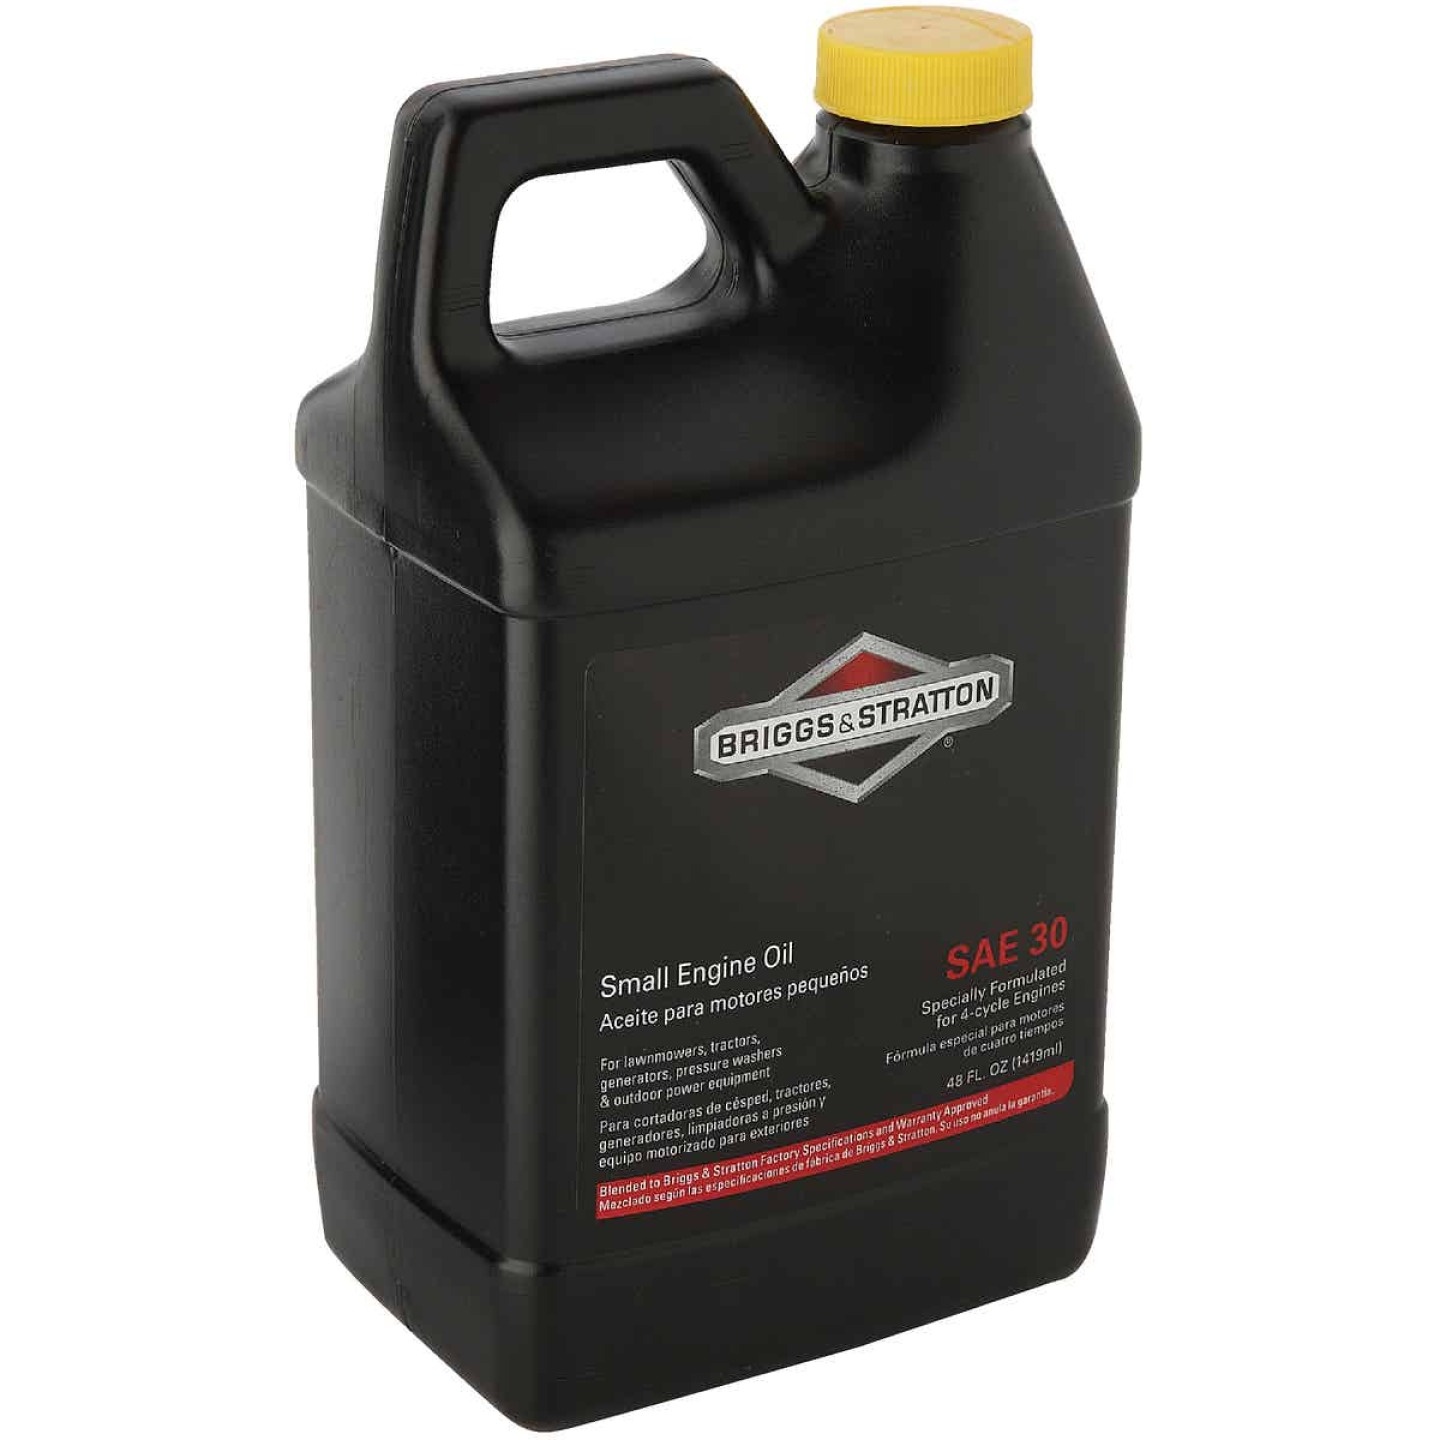 Briggs & Stratton 30W 48 oz 4-Cycle Motor Oil Image 1